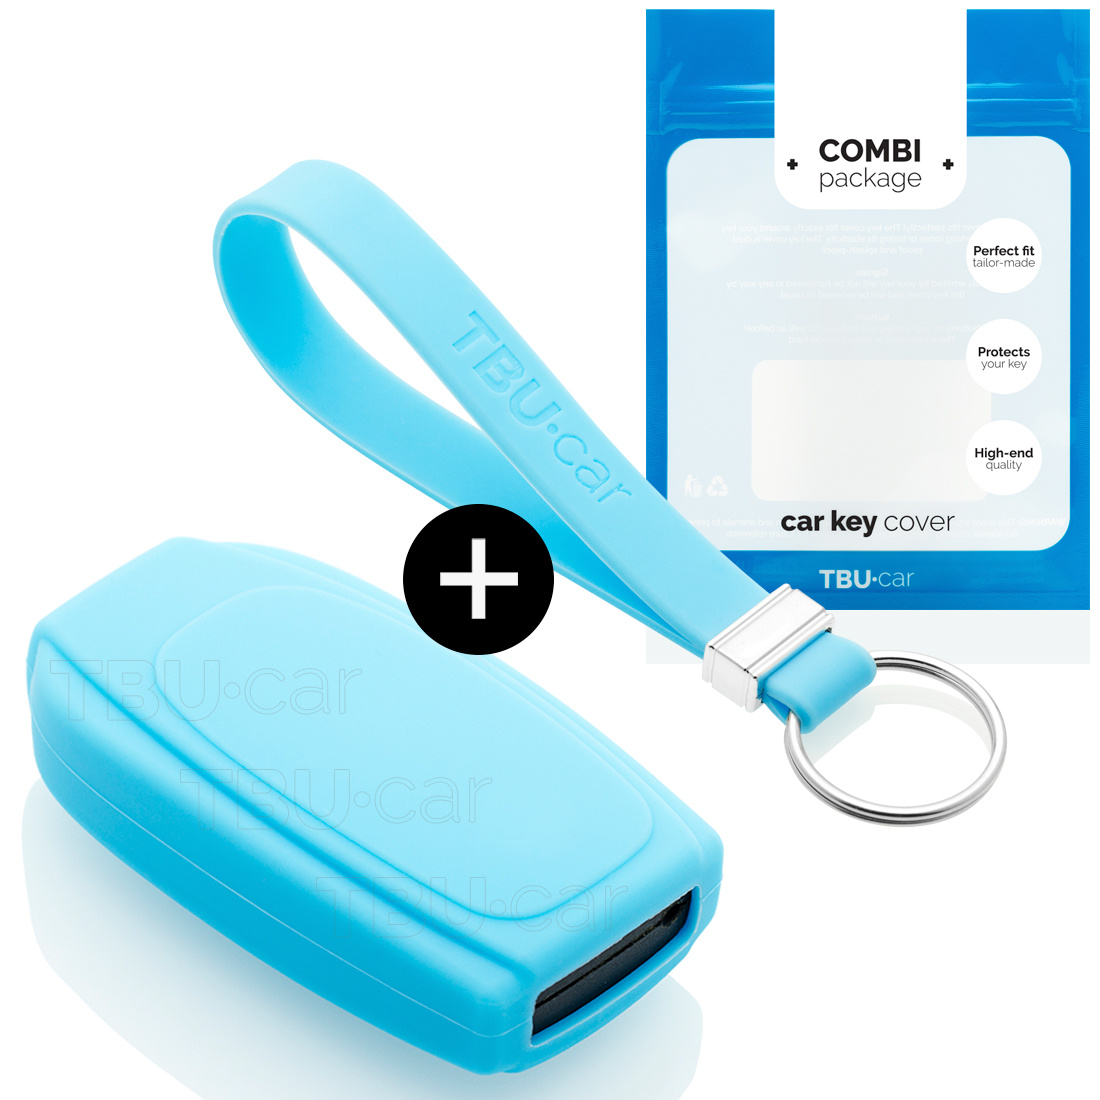 Volvo Car key cover - Silicone Protective Remote Key Shell - FOB Case Cover - Light blue